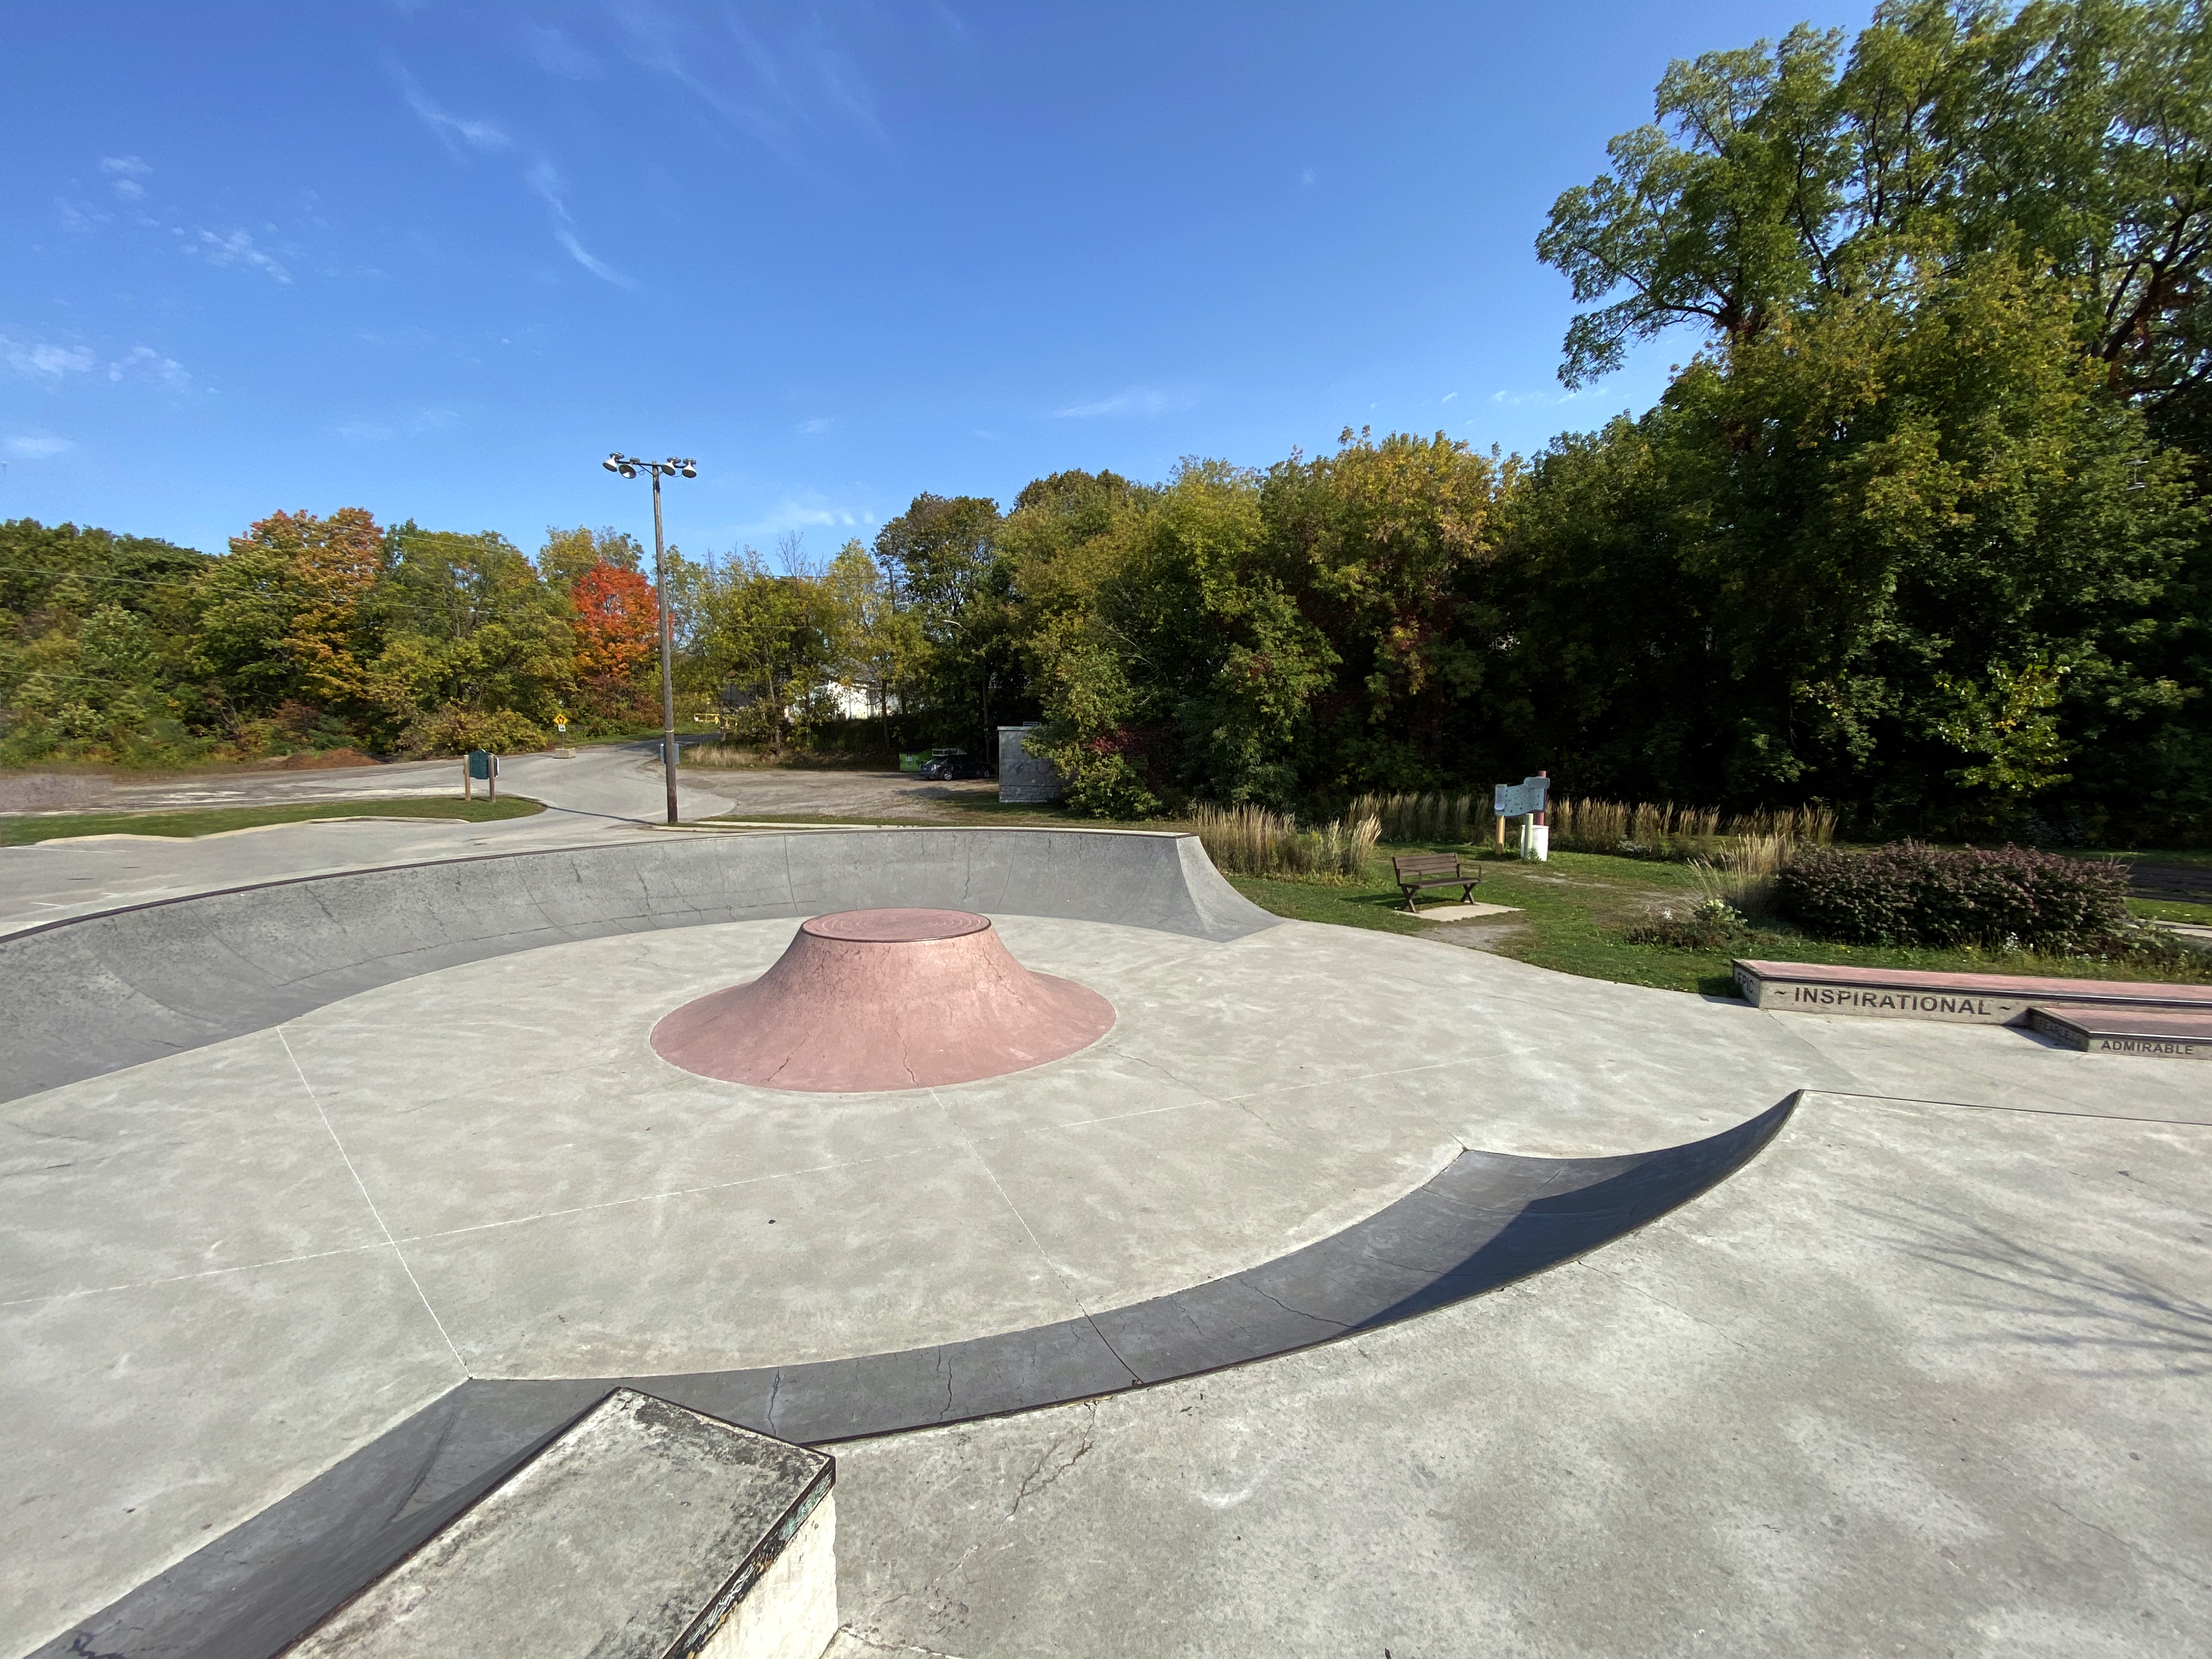 Fonthill skatepark from the top of the bowl